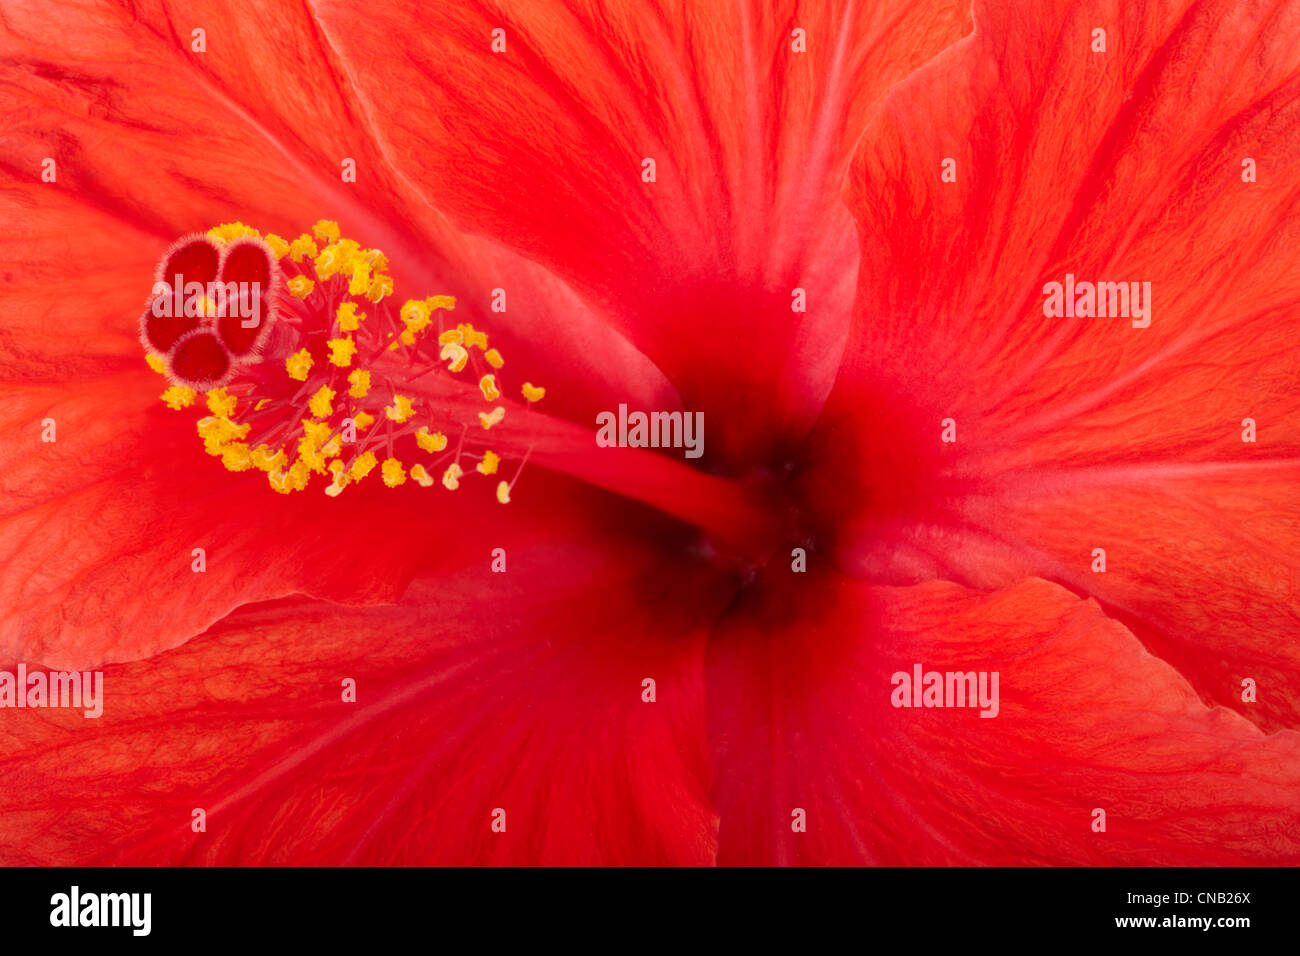 Red hibiscus flower texture background - Stock Image